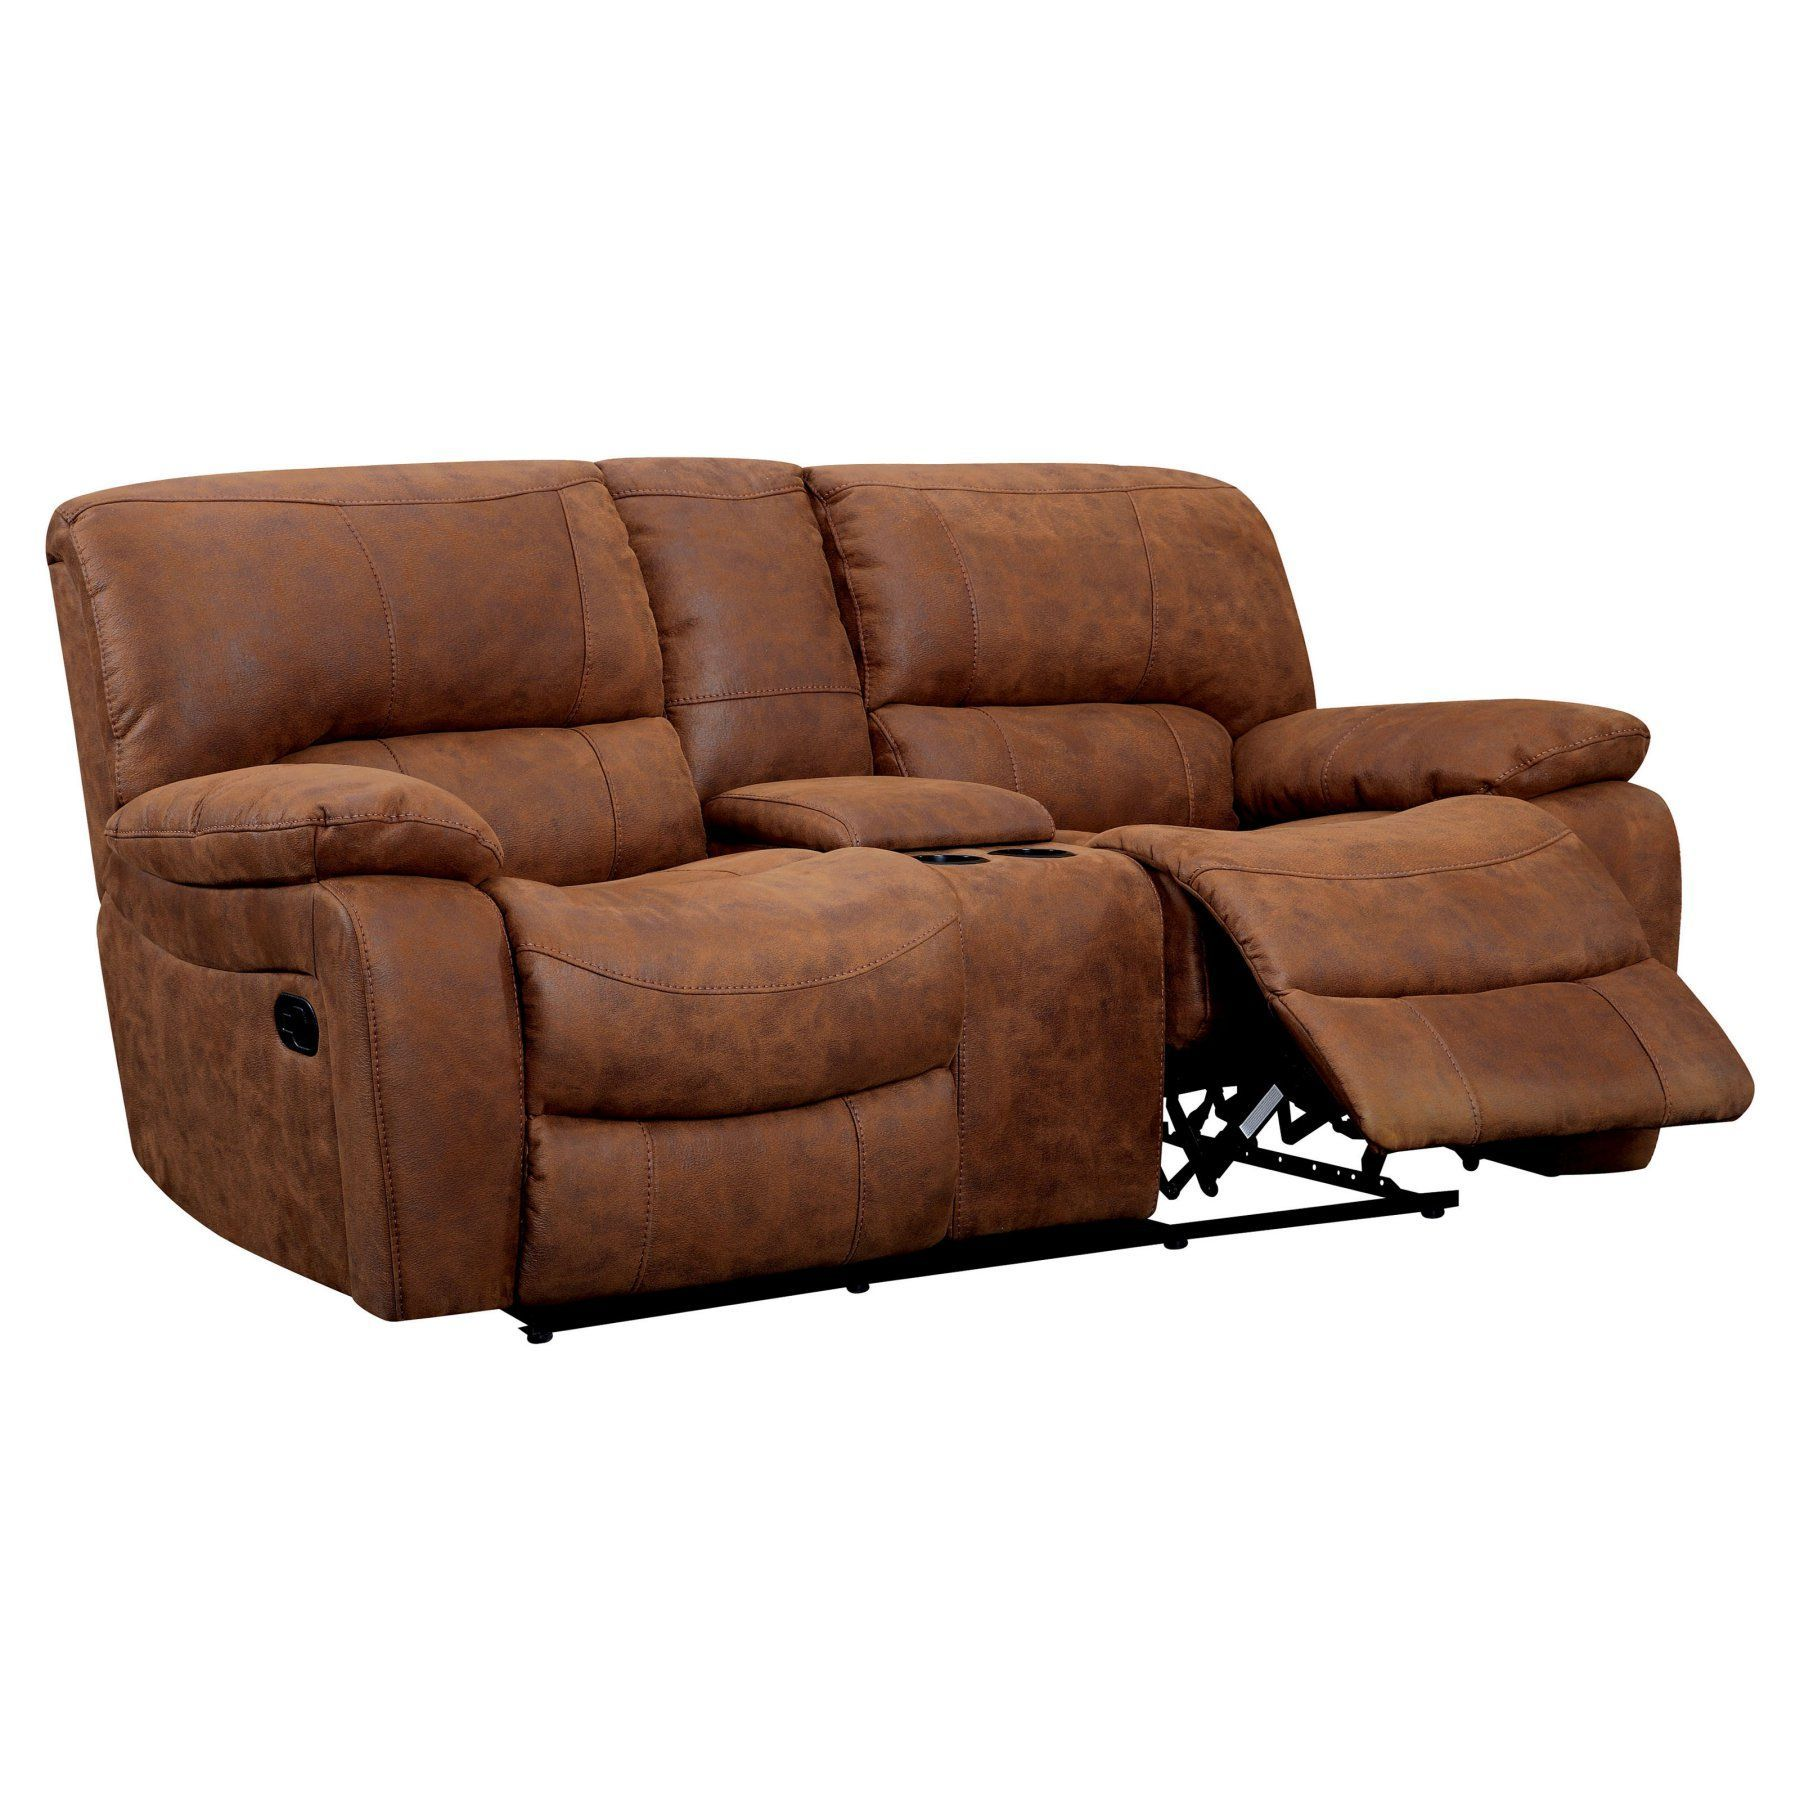 leather console loveseat covers reclining center info couch back and with brown sofa seewetterbericht recliner